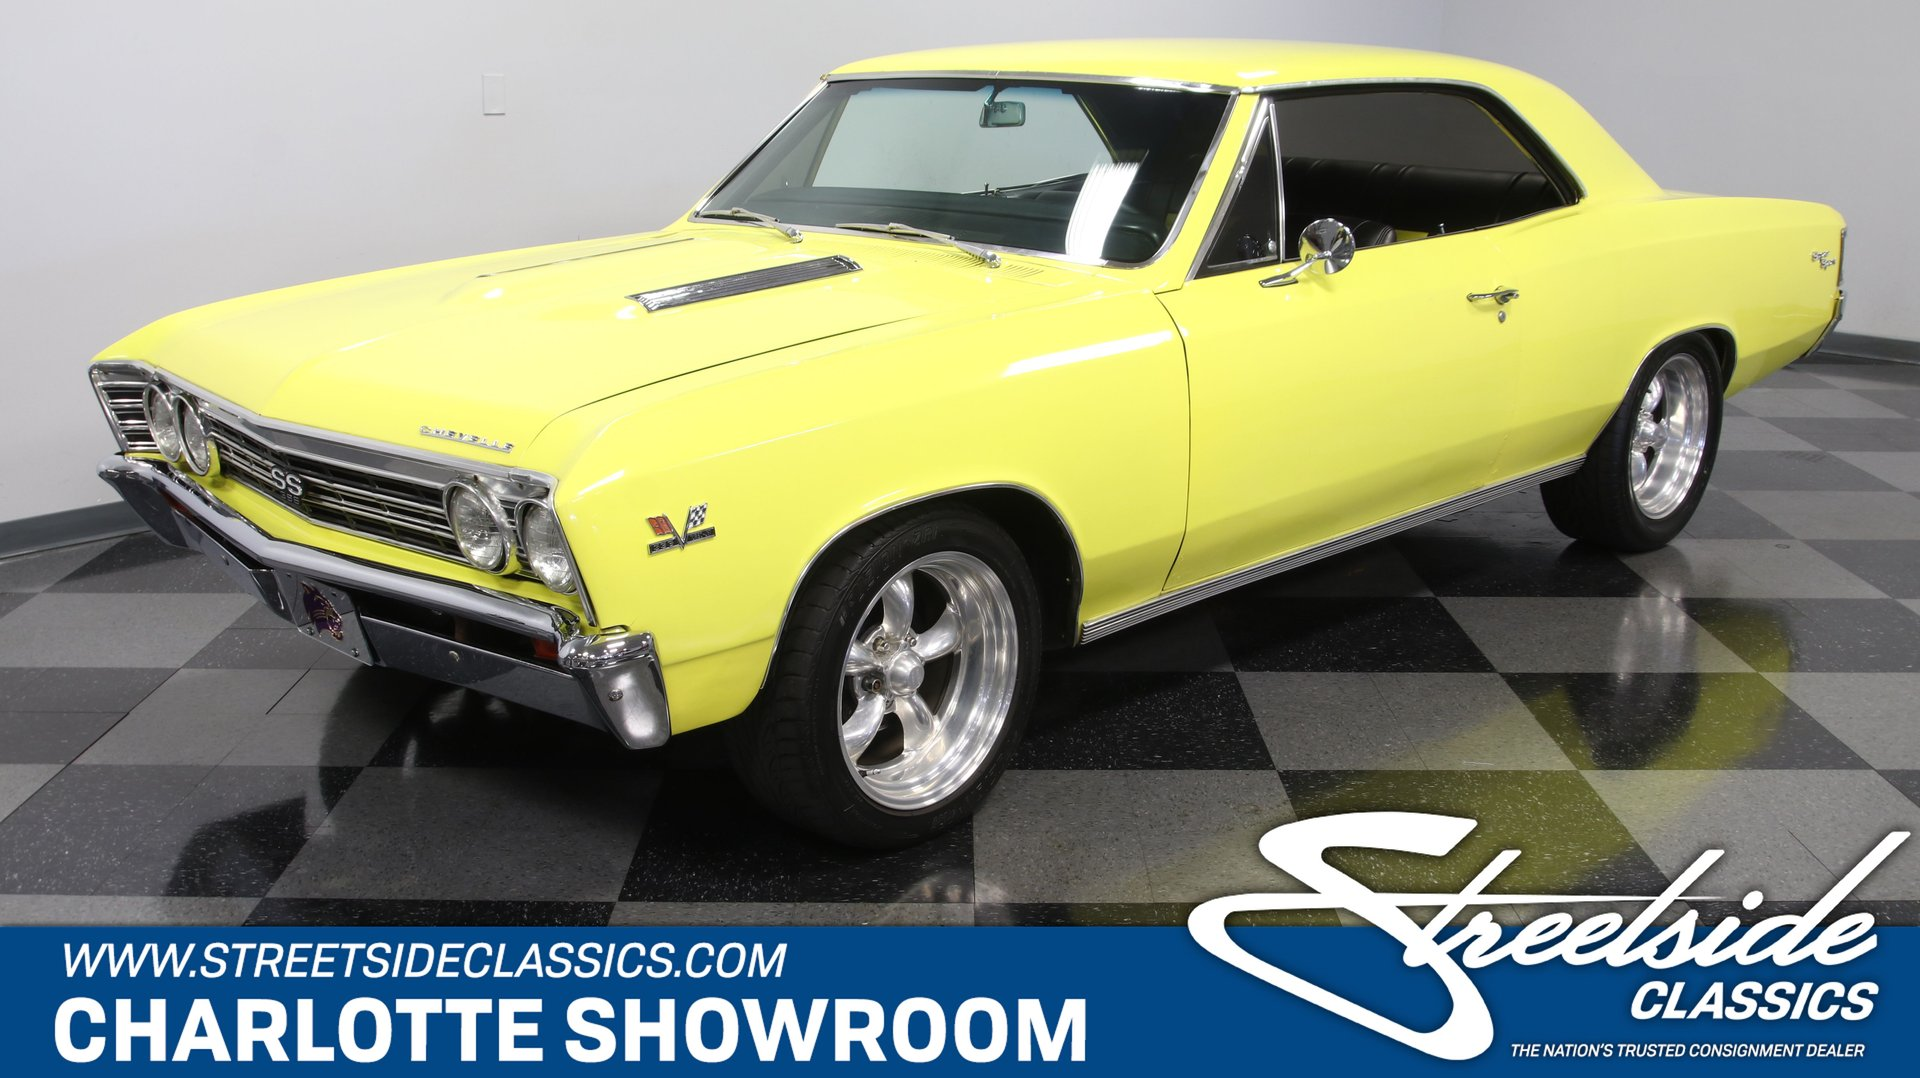 1967 Chevrolet Chevelle SS 454 Tribute for sale #169593